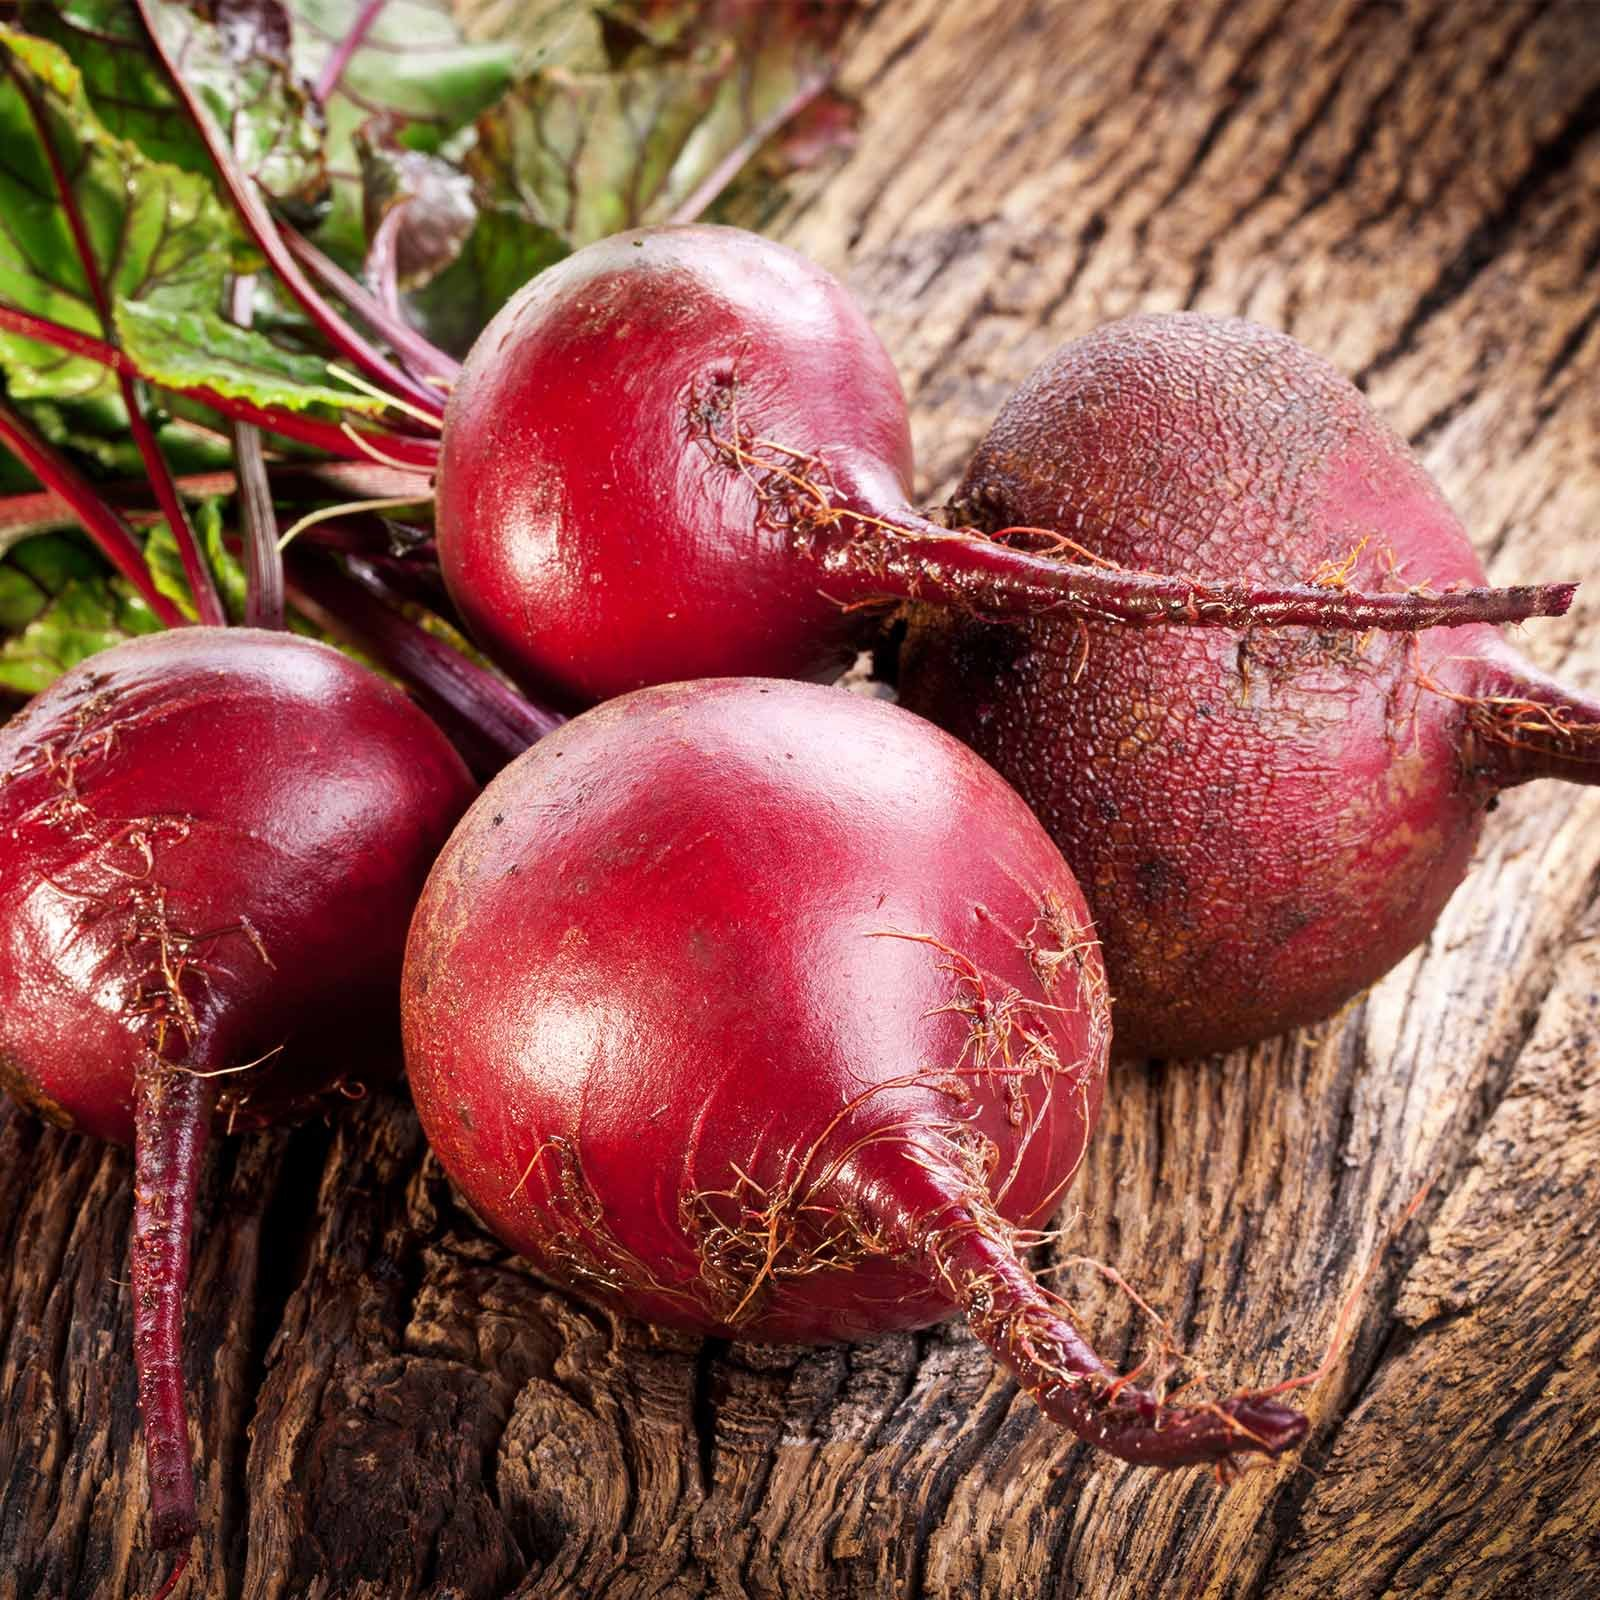 Bulls Blood Beet Seeds - 1 Lb - Non-GMO, Heirloom - Vegetable Garden, Microgreens Seeds by Mountain Valley Seed Company (Image #3)